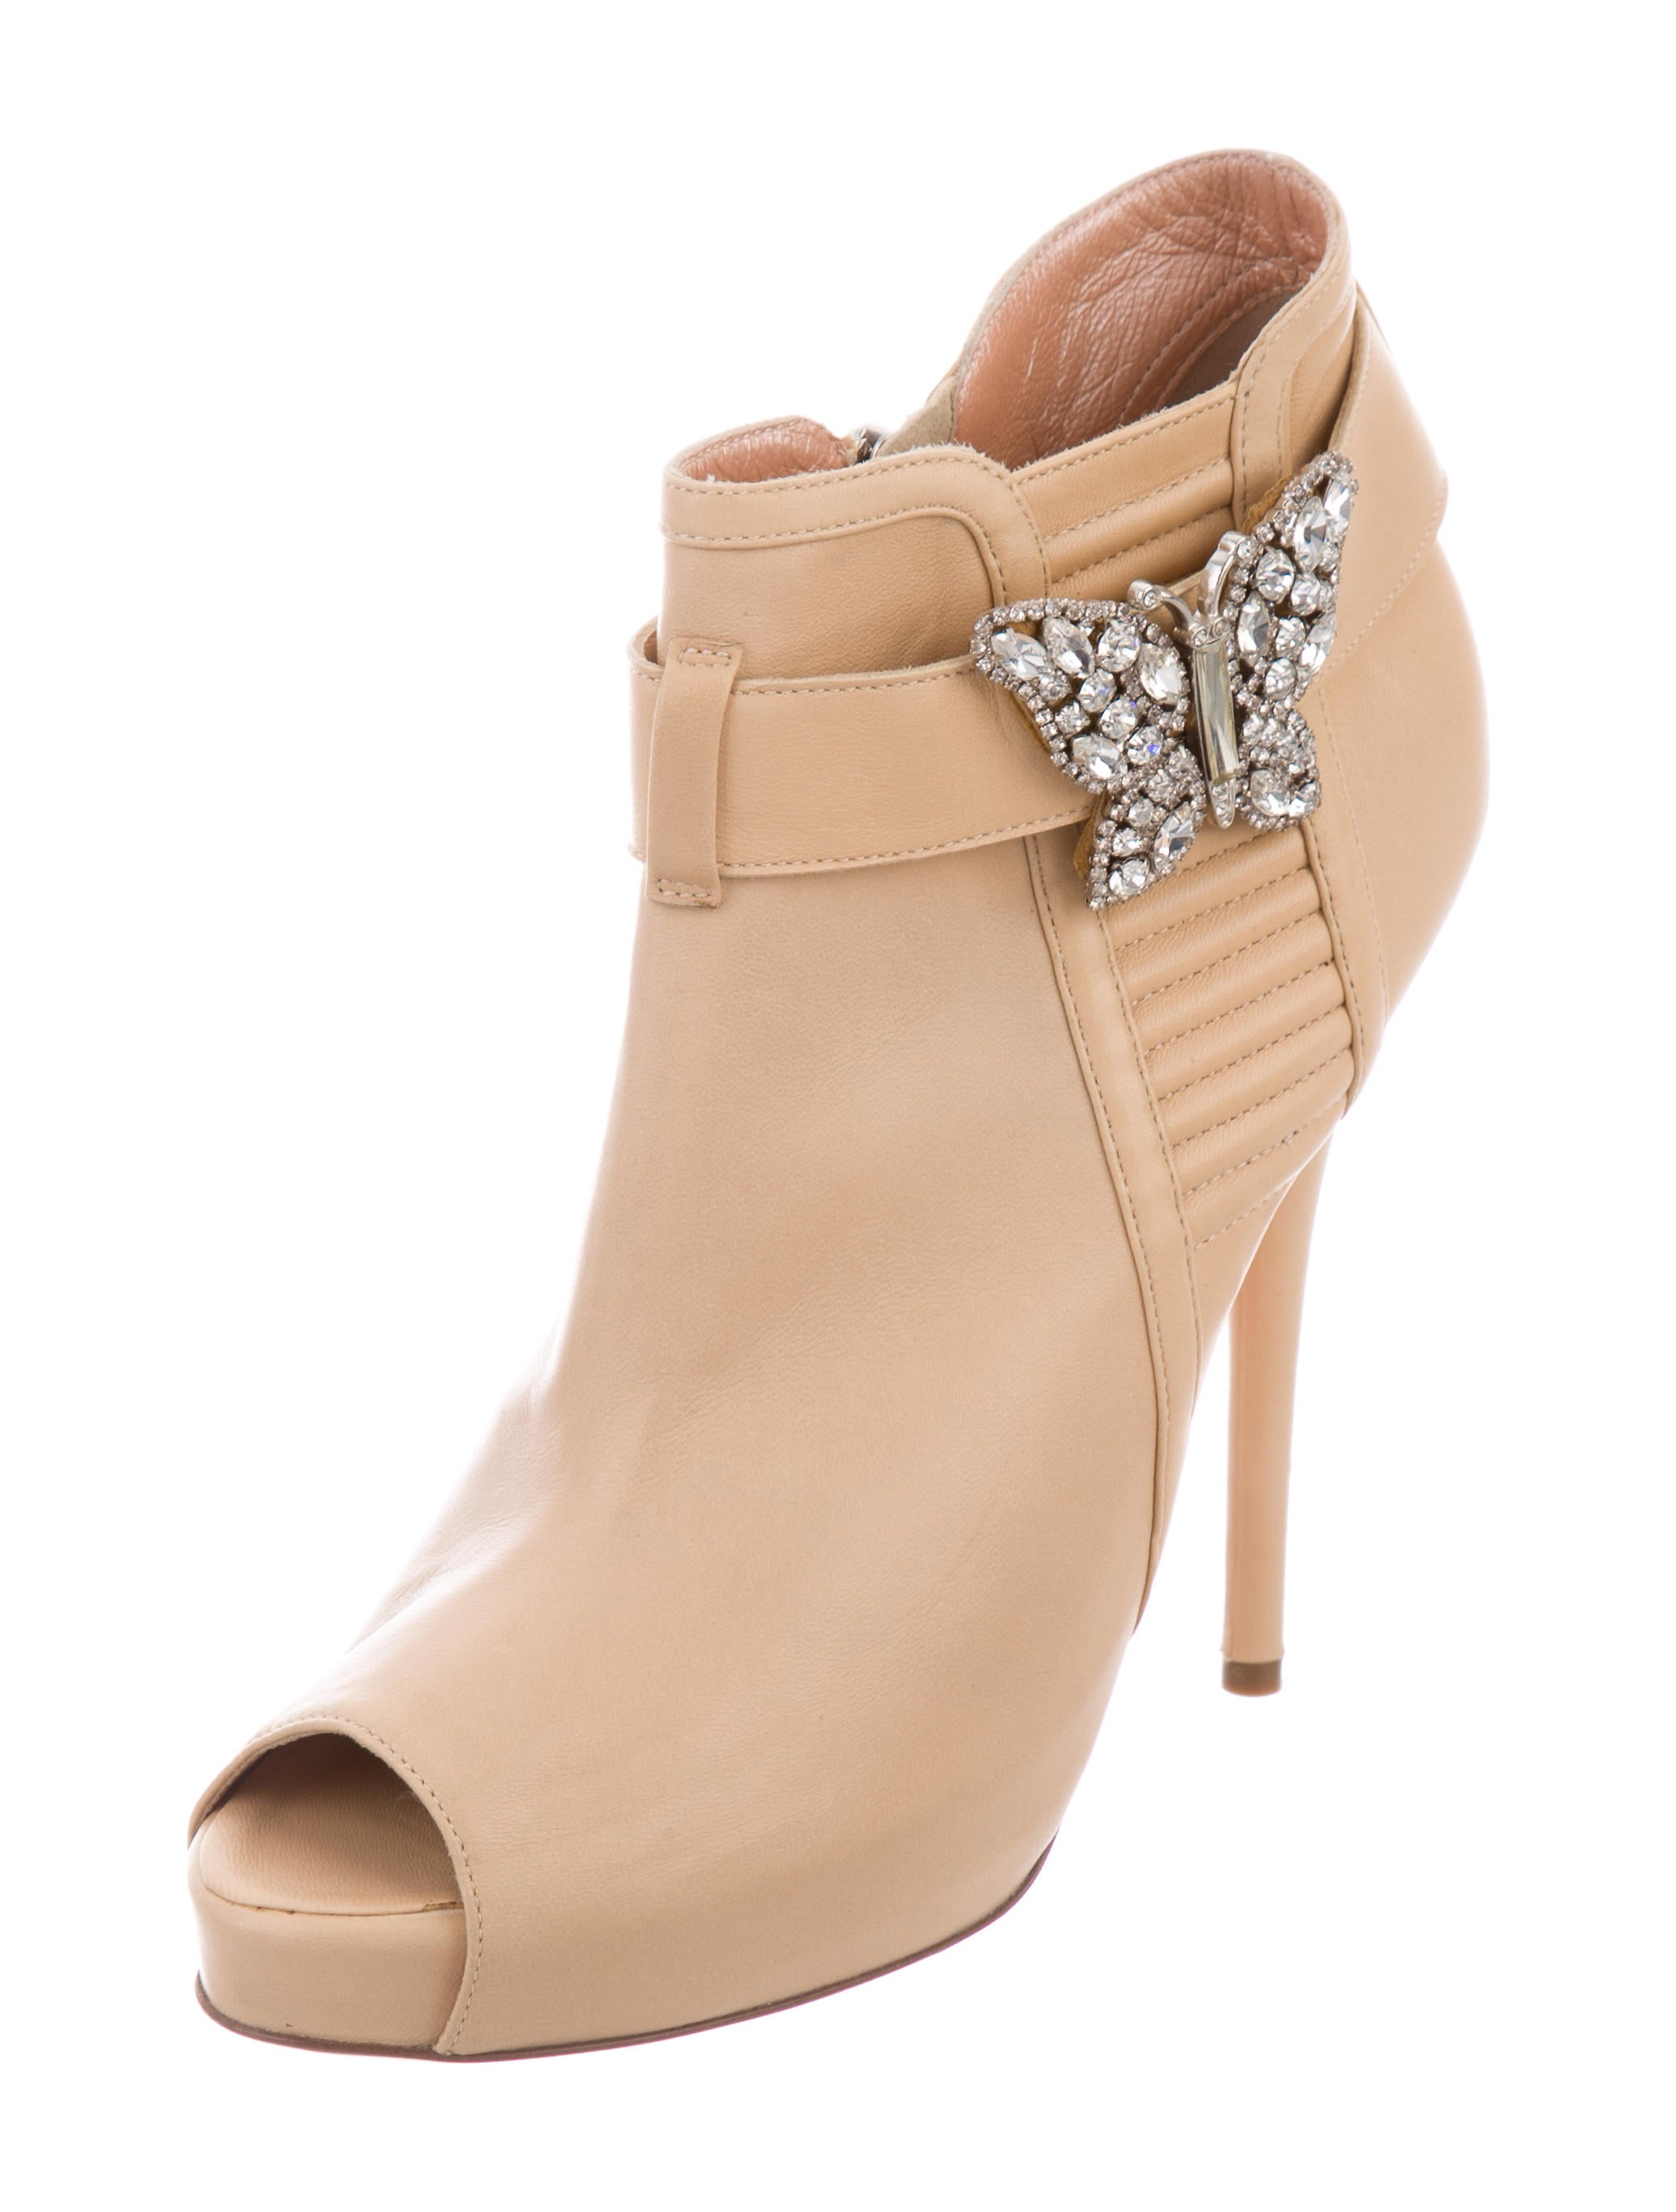 clearance reliable Aruna Seth Leather Jeweled Ankle Boots outlet footaction vkYzeifMsR